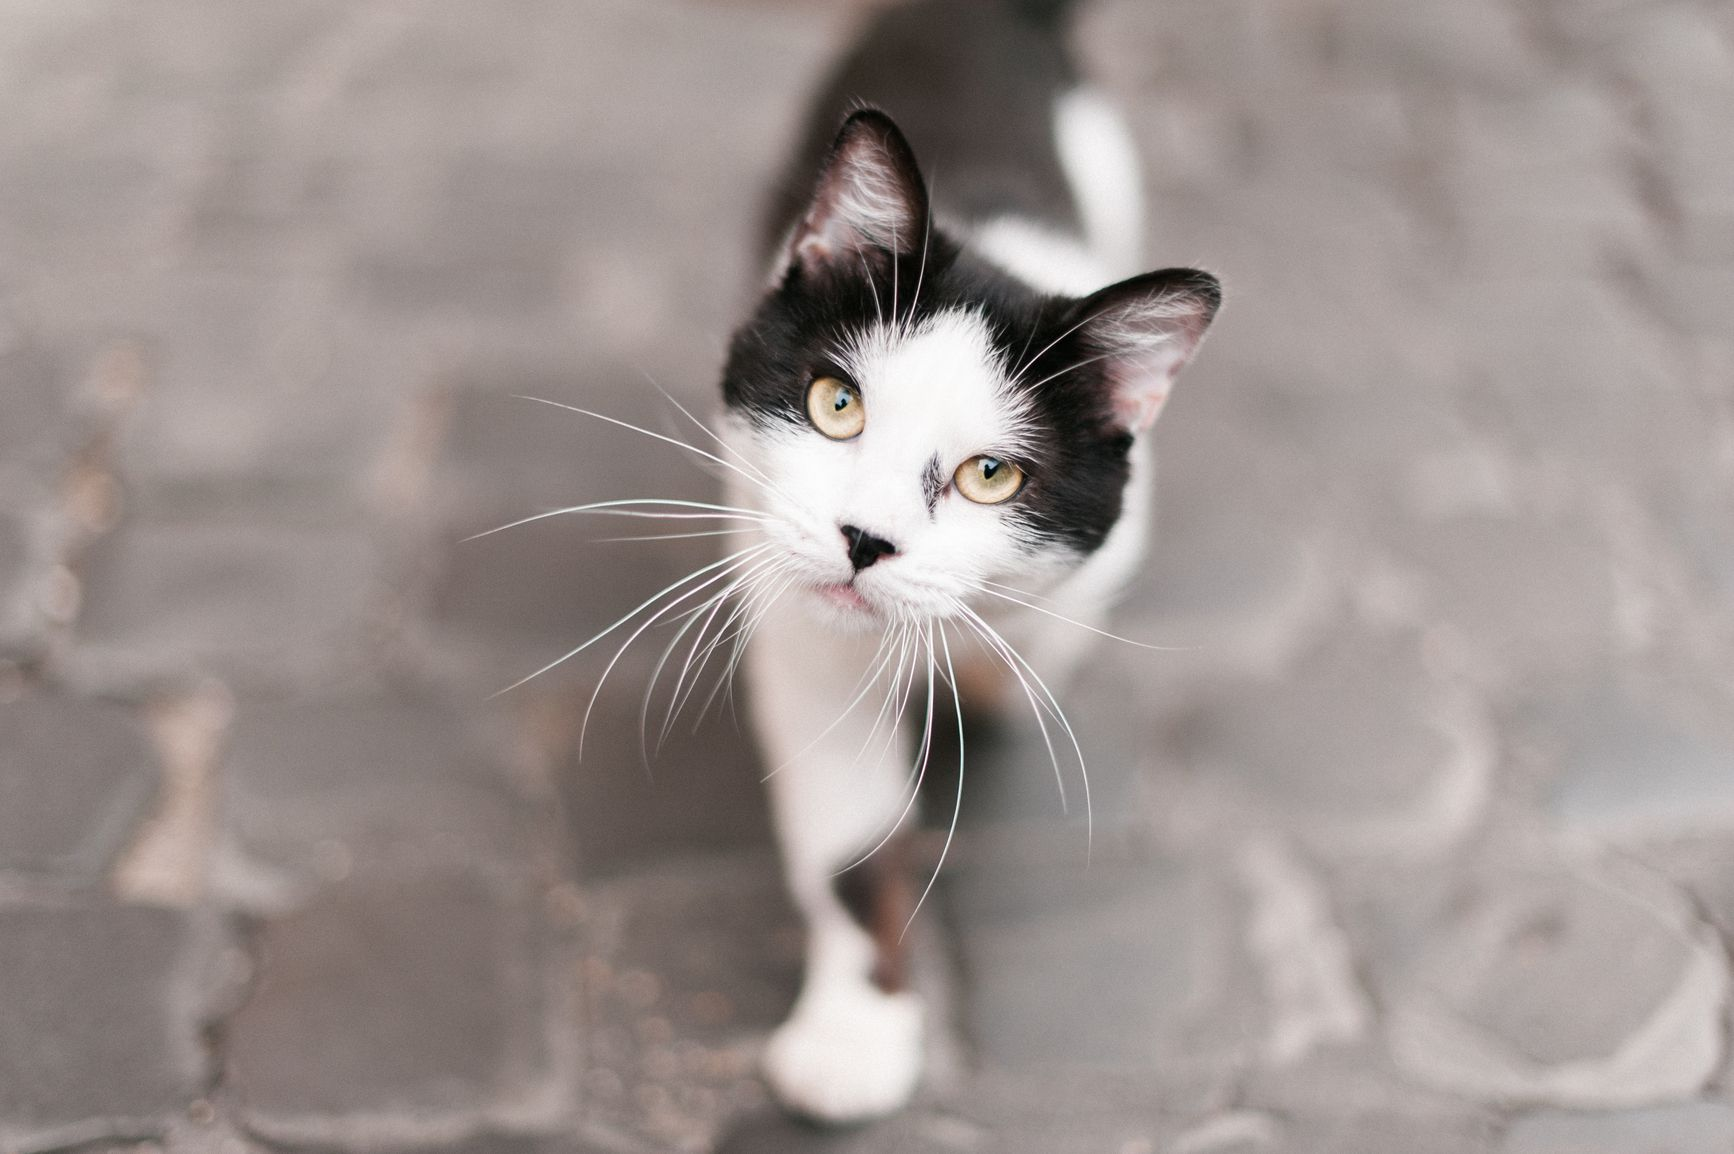 Cat Want Outside? Try These Tips to Keep Him Happily Indoors